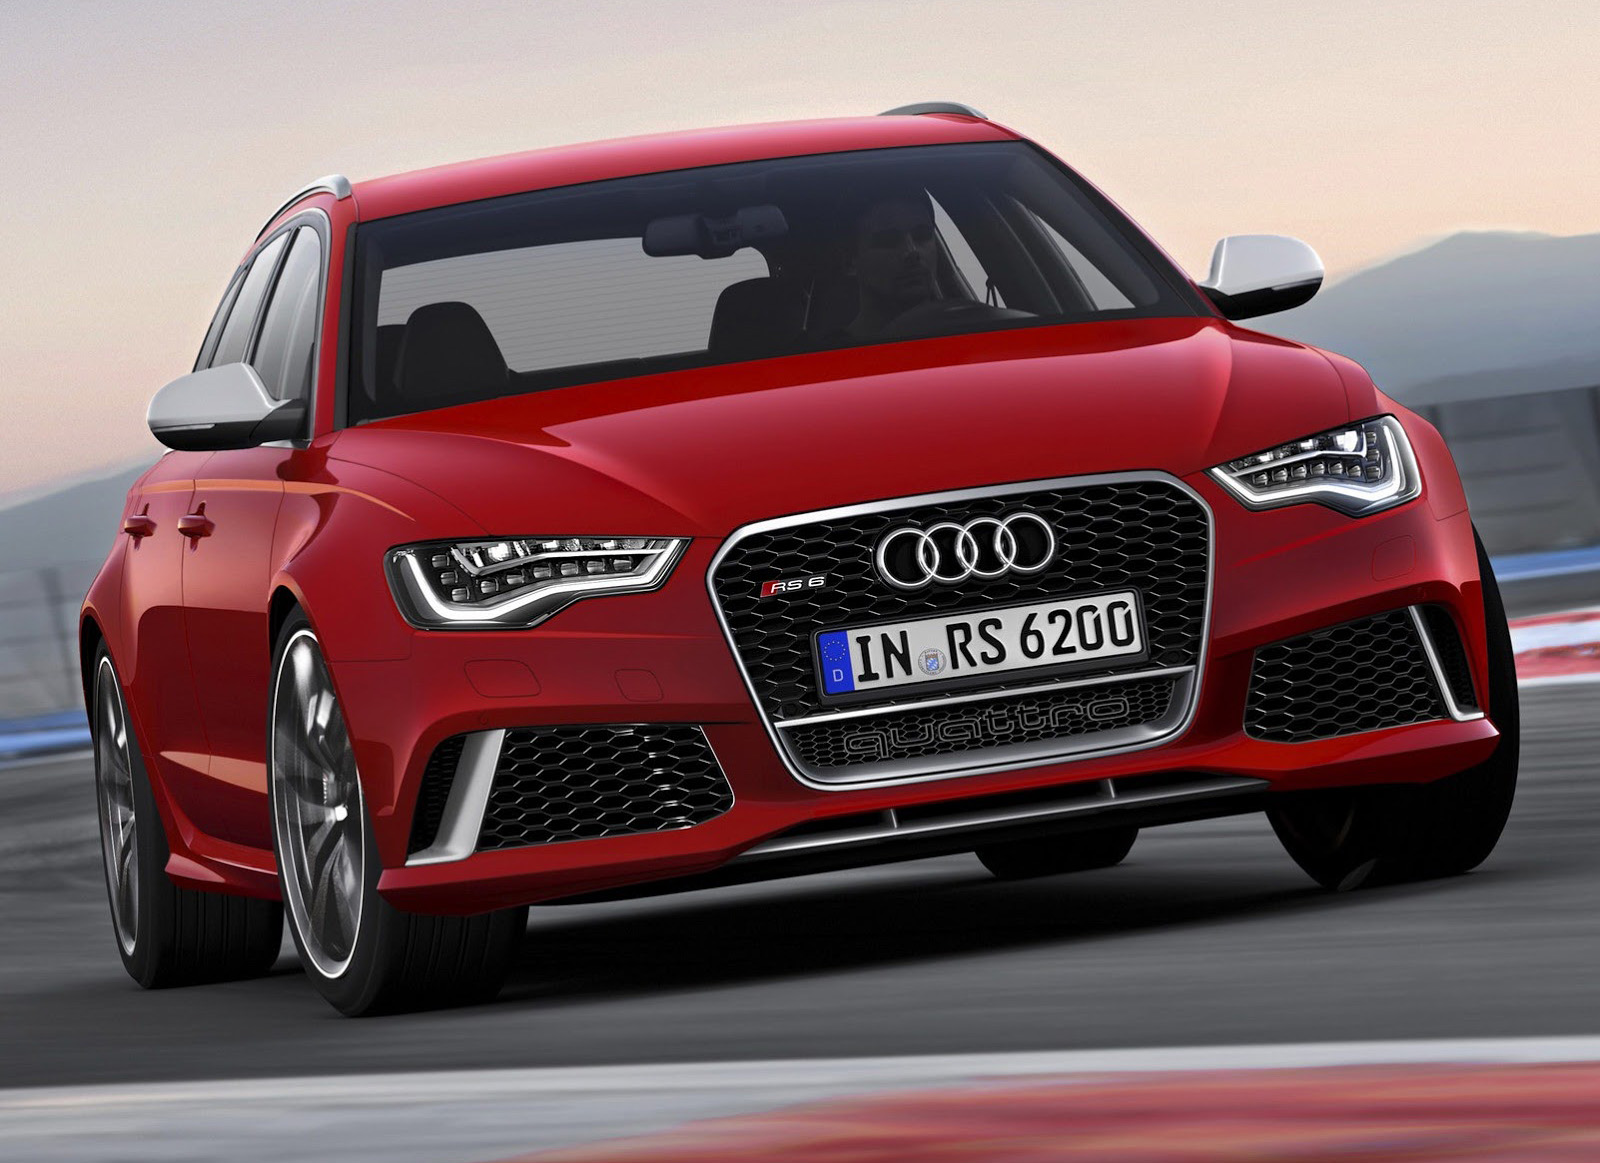 2014 Audi RS 6 Avant Revealed In New Leaked Images